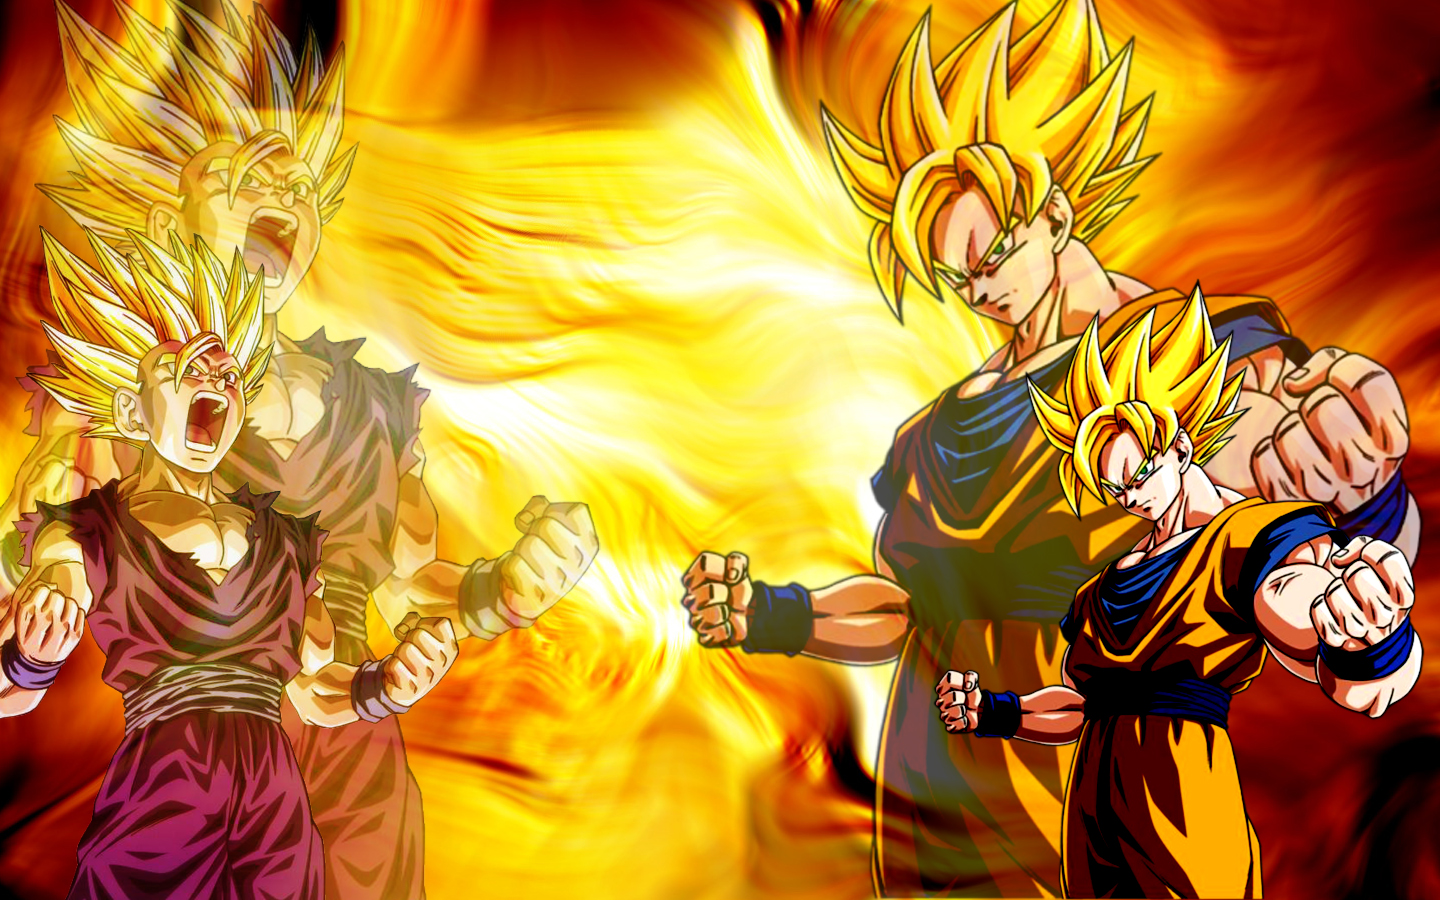 Dragon Ball Z Goku amp Gohan Wallpaper 1440x900